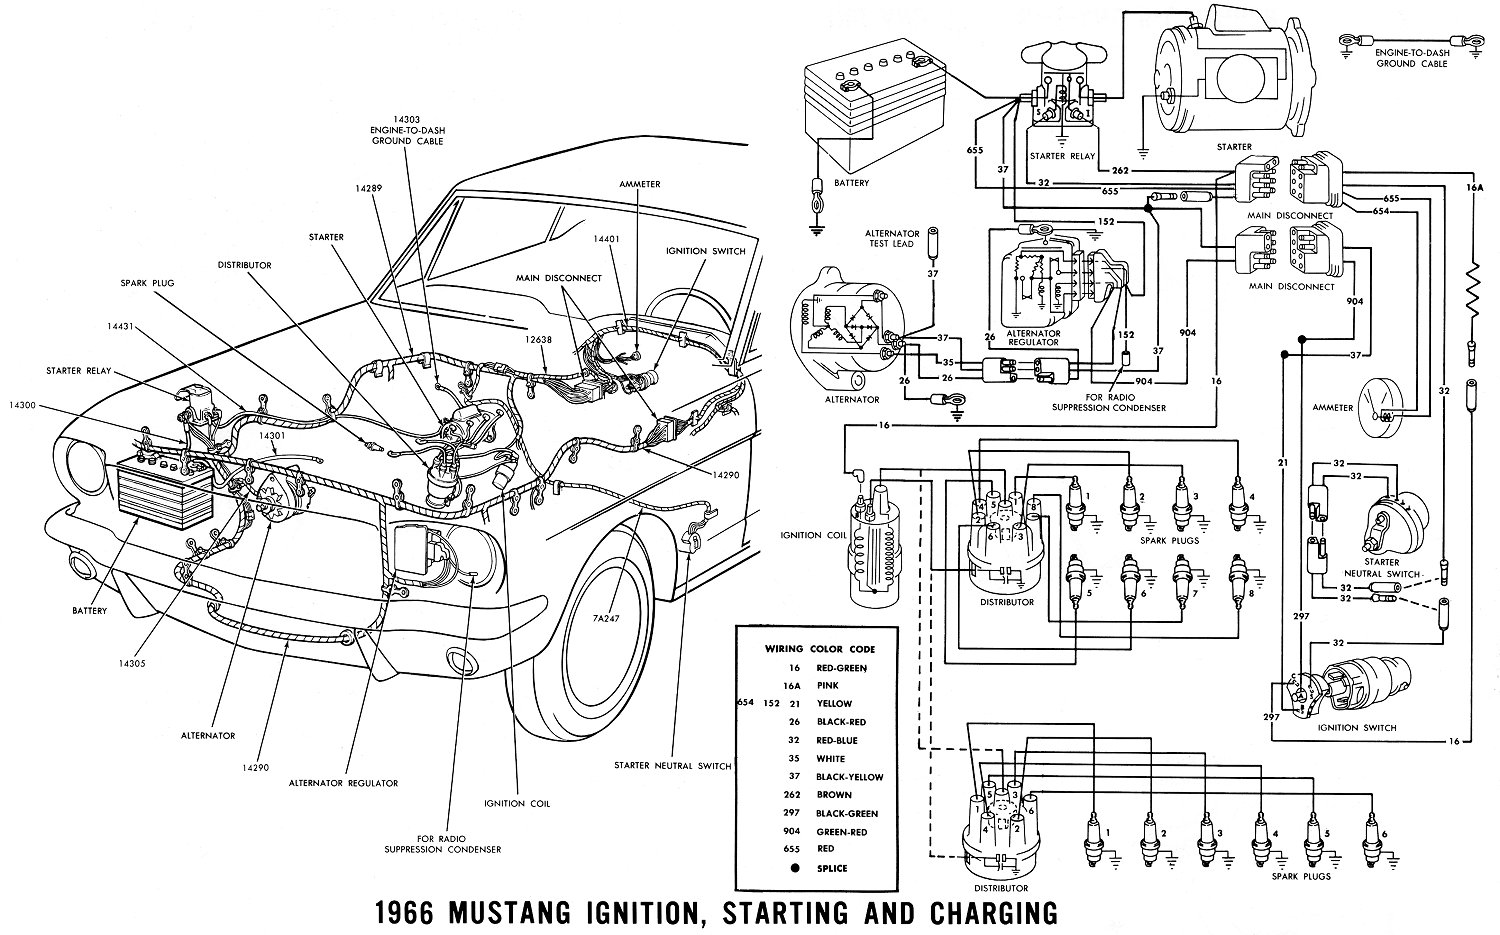 Car Interior Diagram on 1977 ford f100 ranger interior